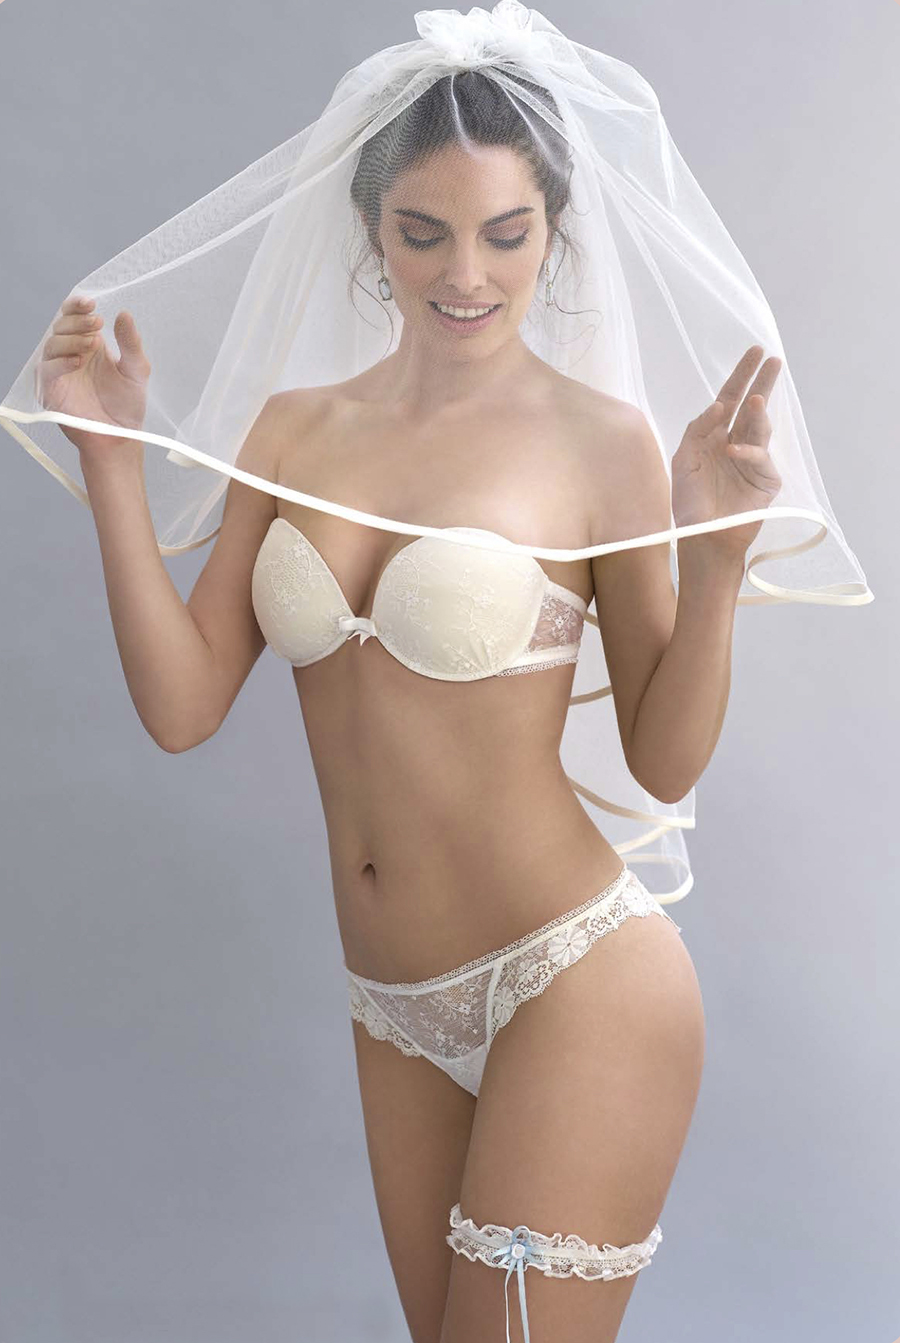 Bridal Lingerie, Sexy Lingerie, Wedding Day, Sexy Bridal Lingerie